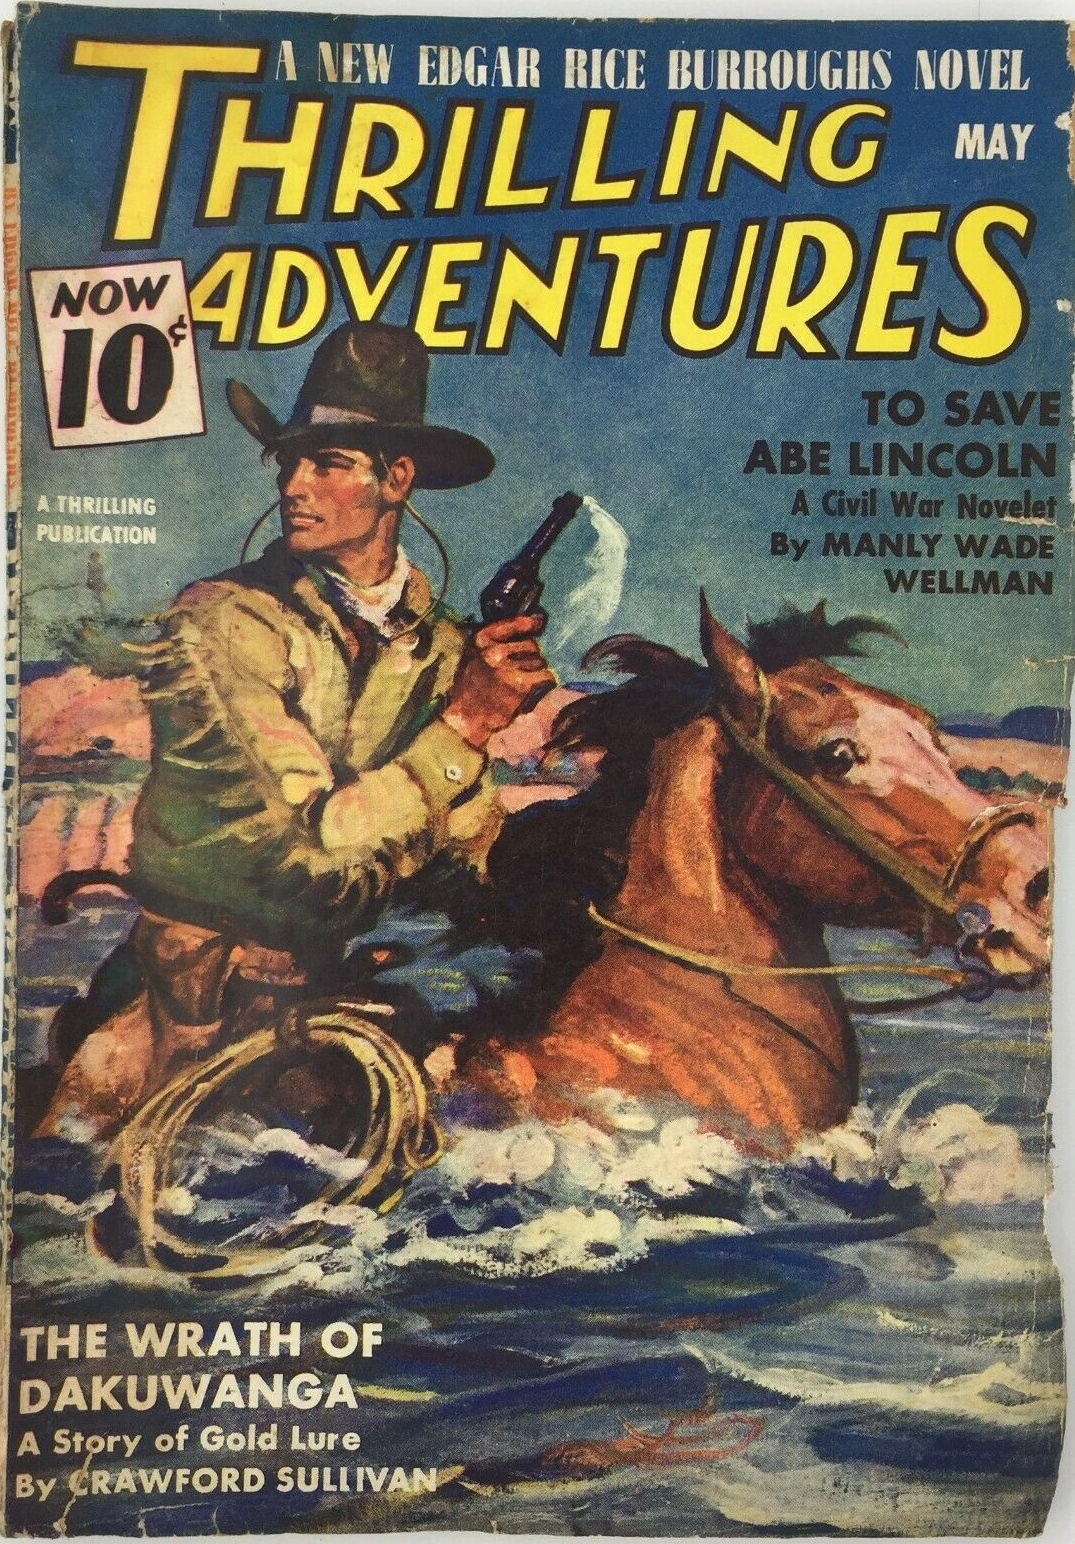 Thrilling Adventures - May 1940